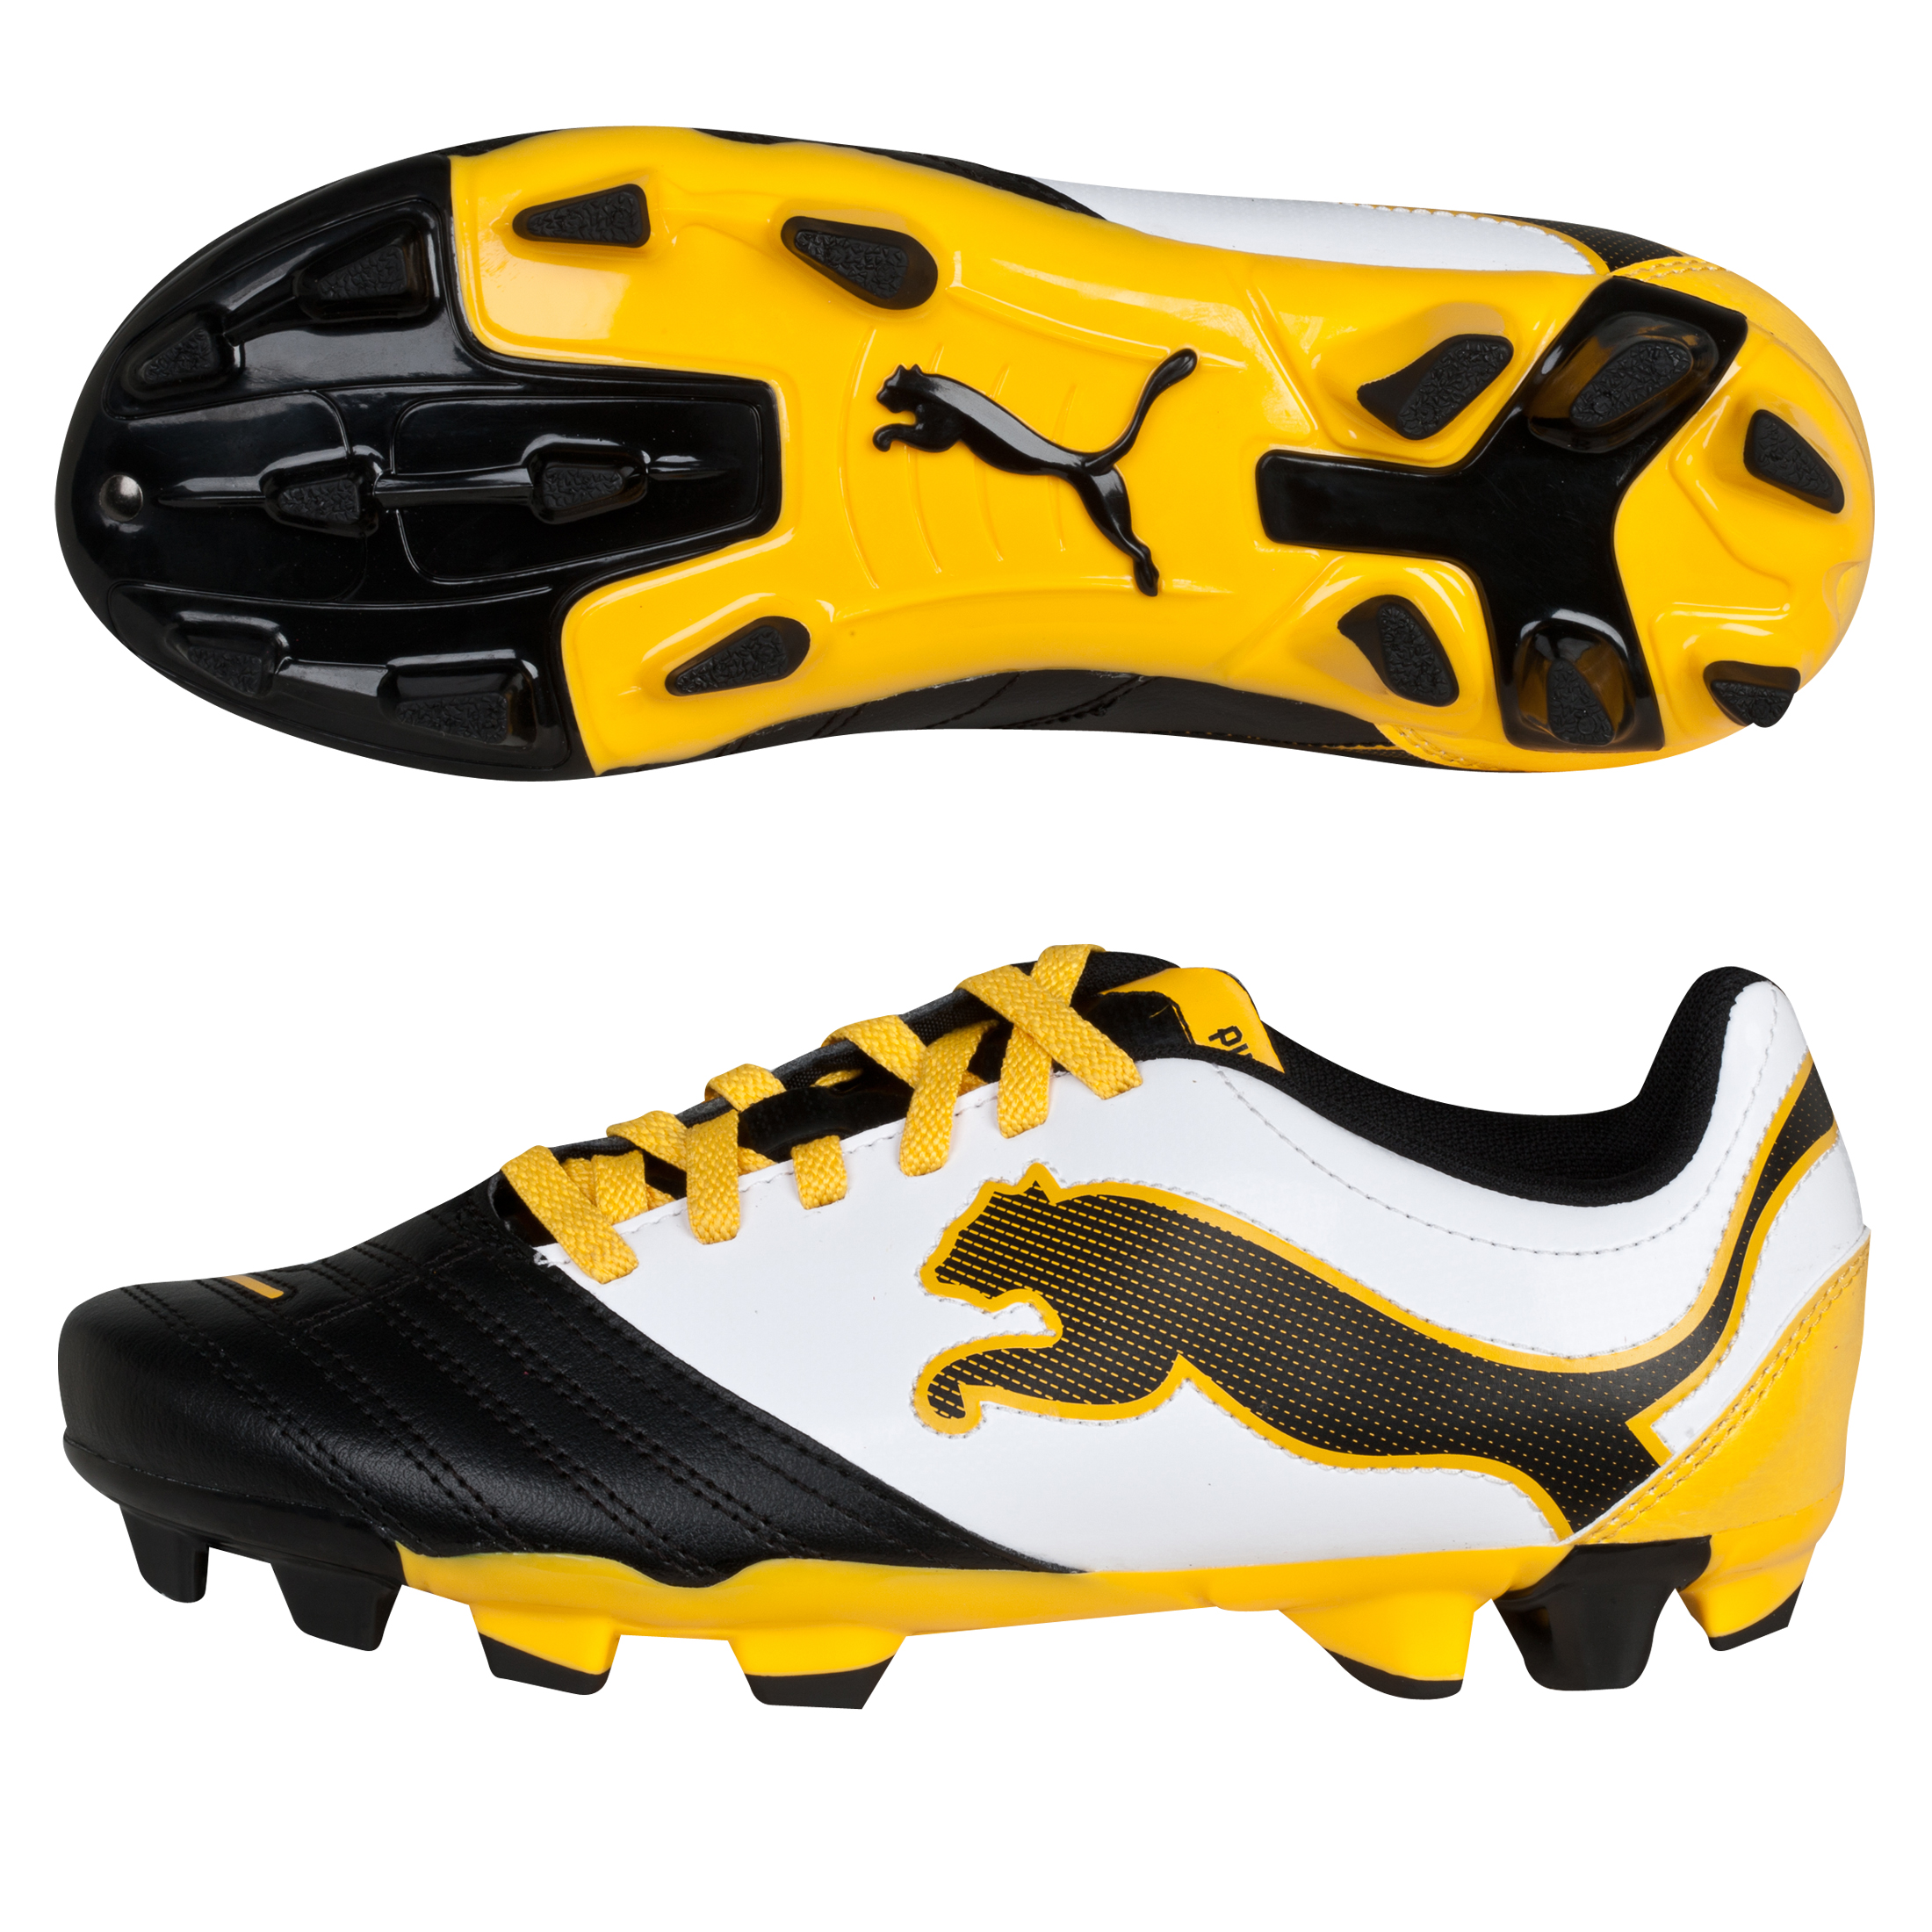 Puma PowerCat 4.12 Firm Ground Football Boots - Black/White/Team Yellow - Kids